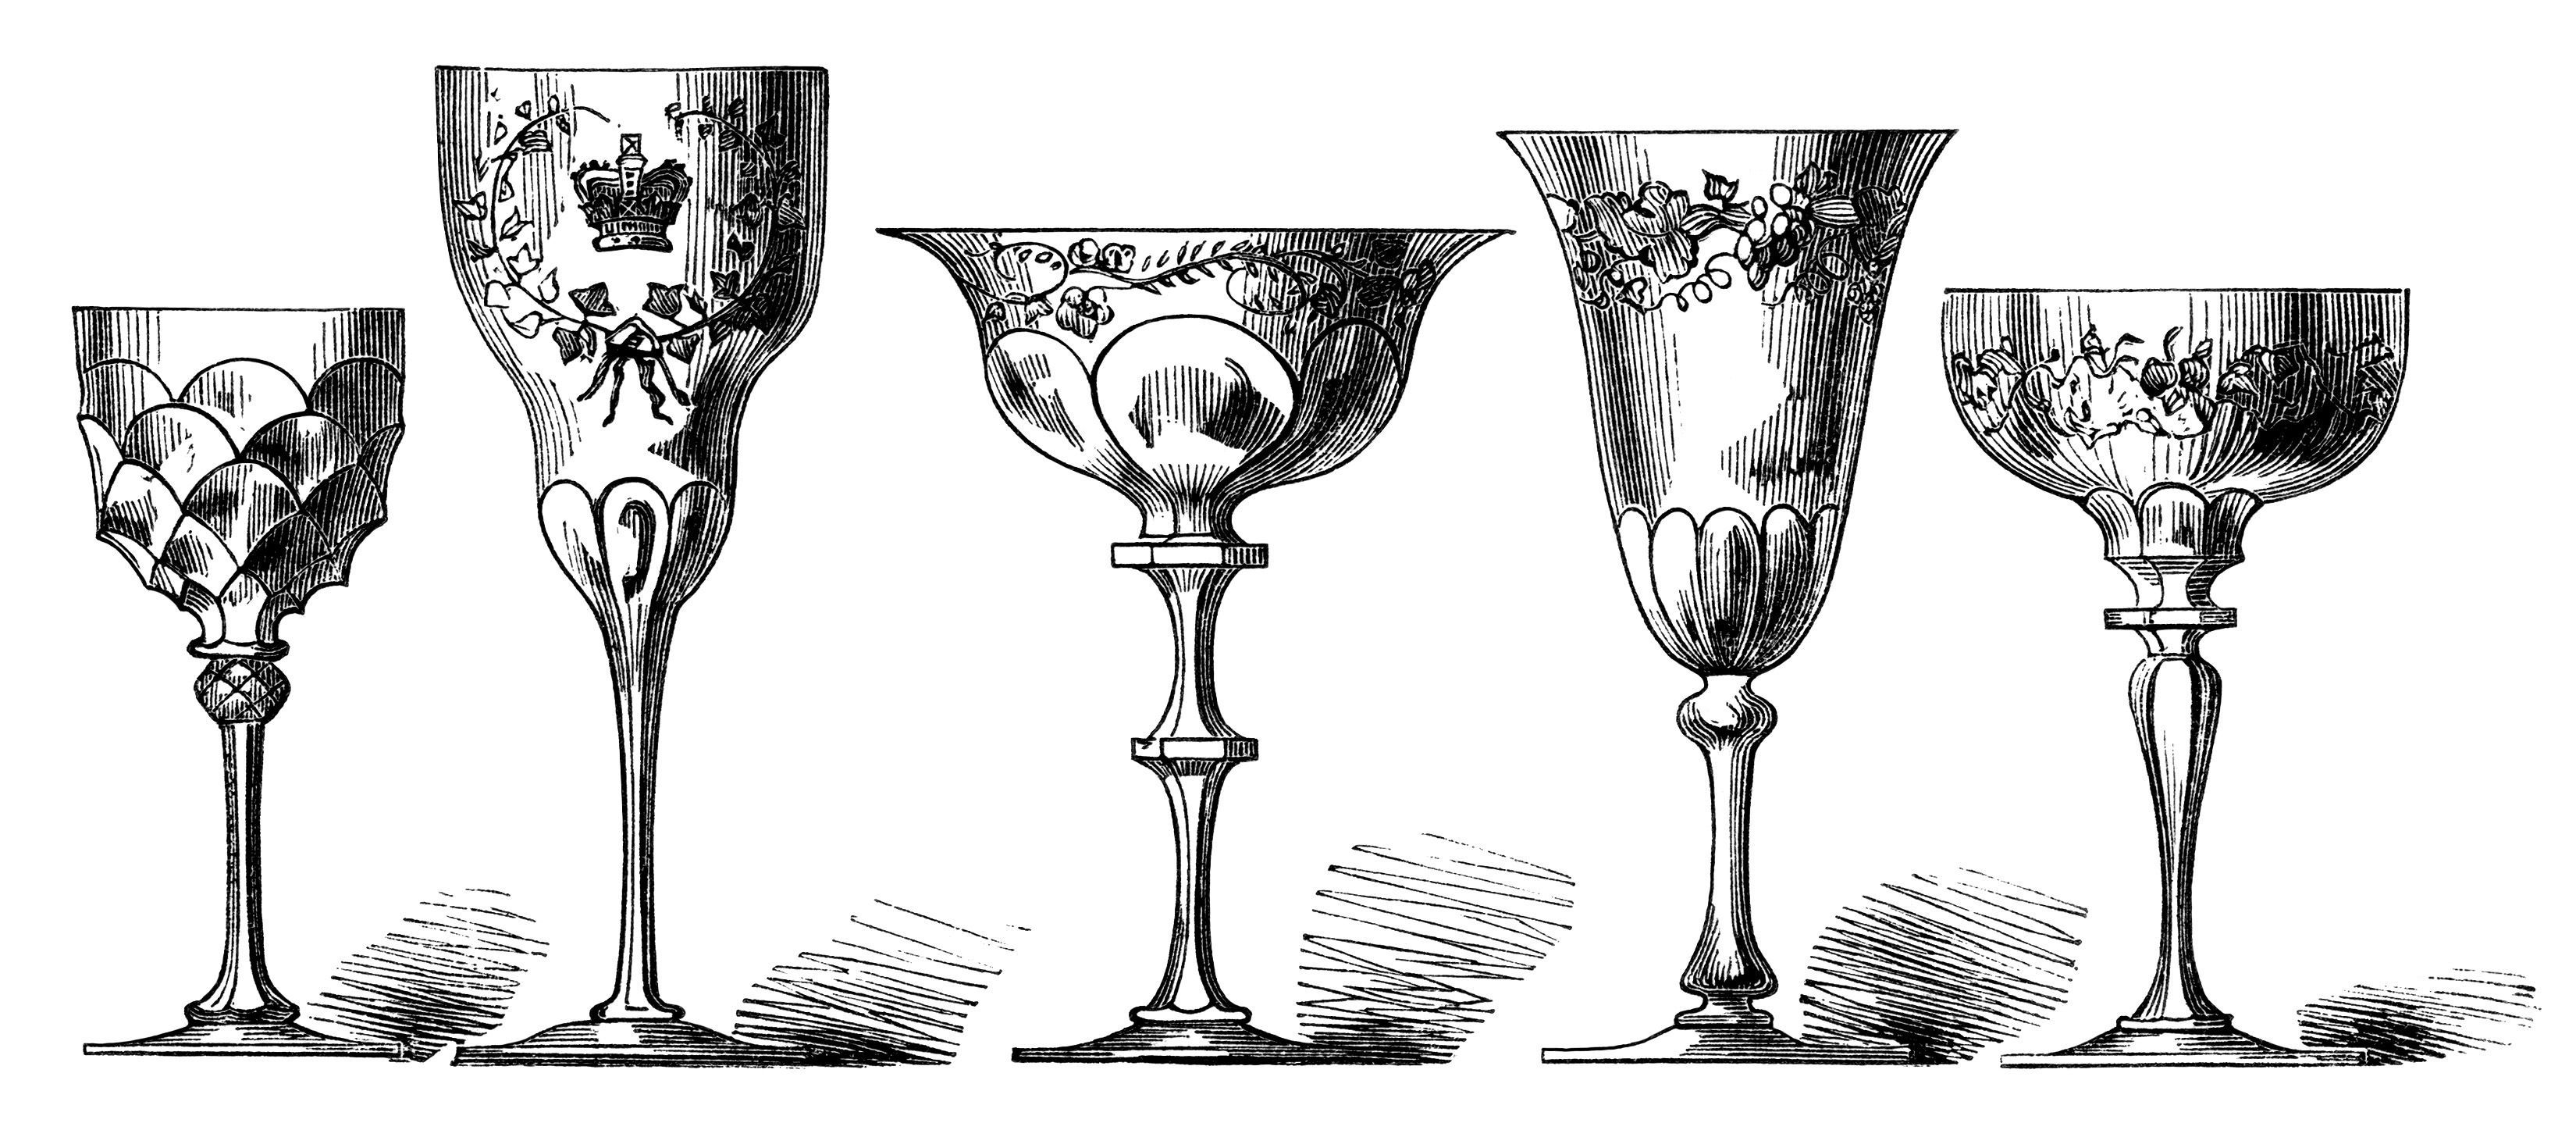 vintage wine glass clip art, antique wine goblet image